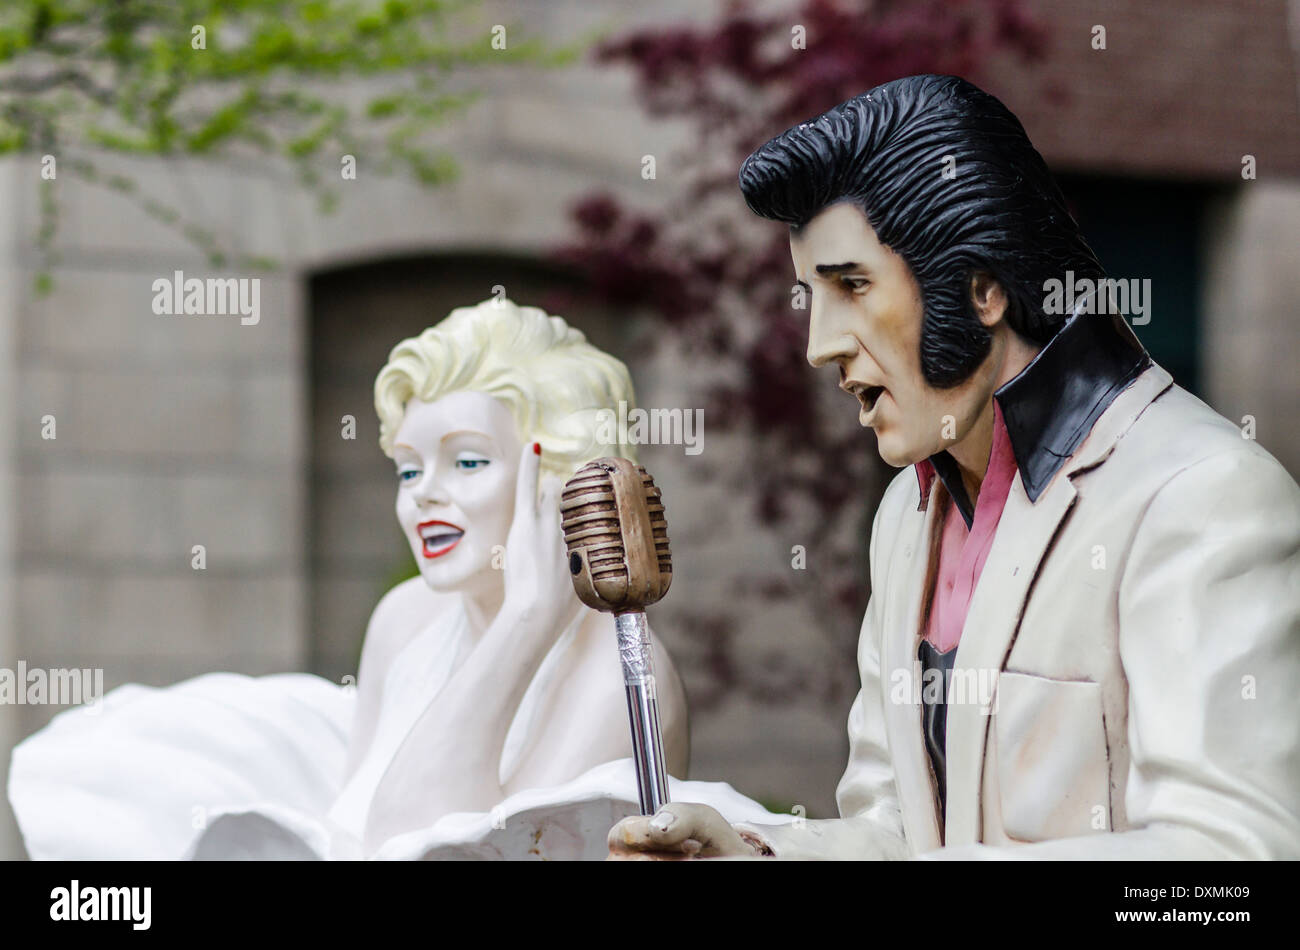 Elvis Marilyn Monroe Elvis Presley And Marilyn Monroe Life Size Figures And Microphone